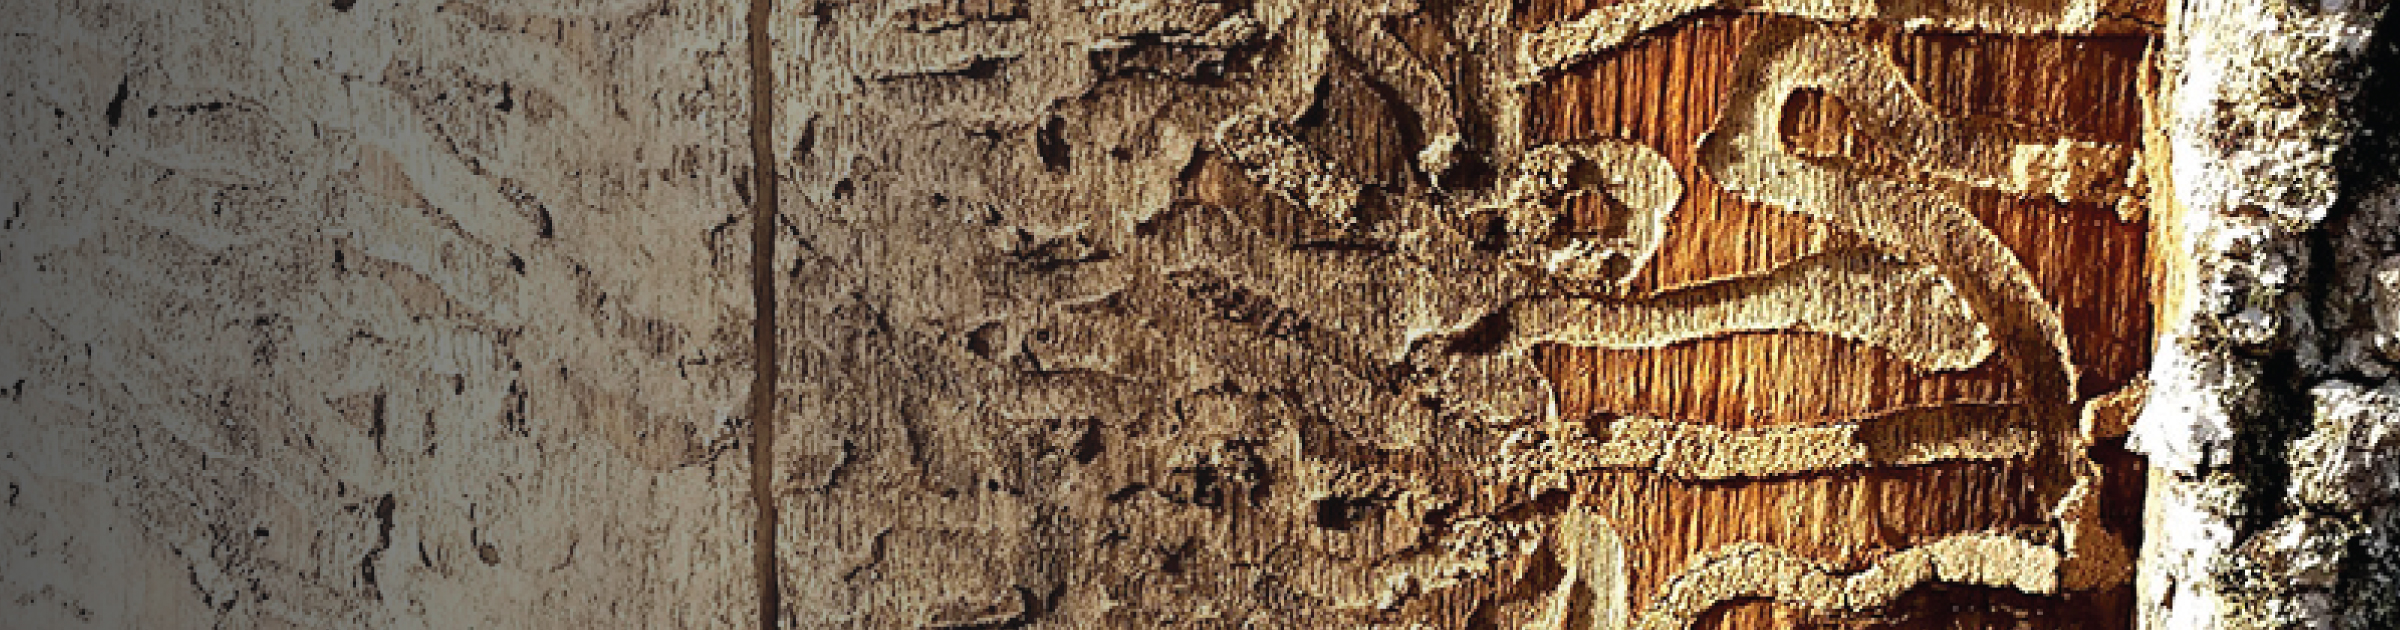 EAB Detection Services Banner Image